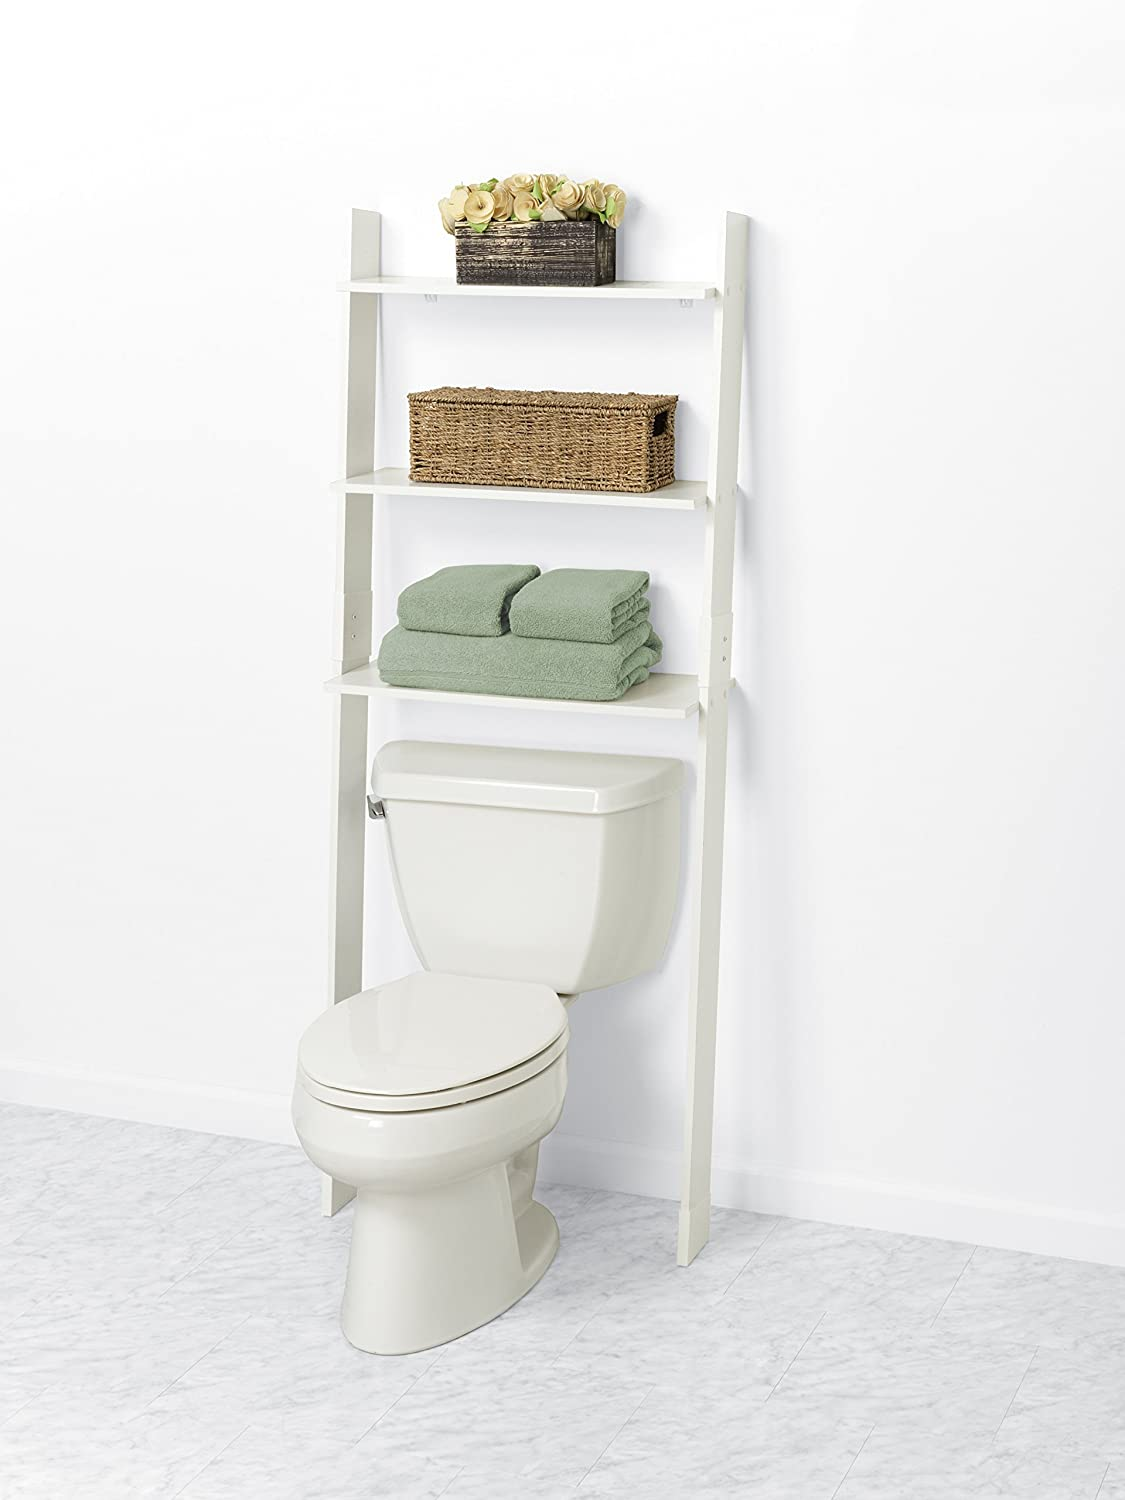 Charmant Amazon.com: Zenna Home 9431W, Wood Ladder Bathroom Spacesaver, White: Home  U0026 Kitchen